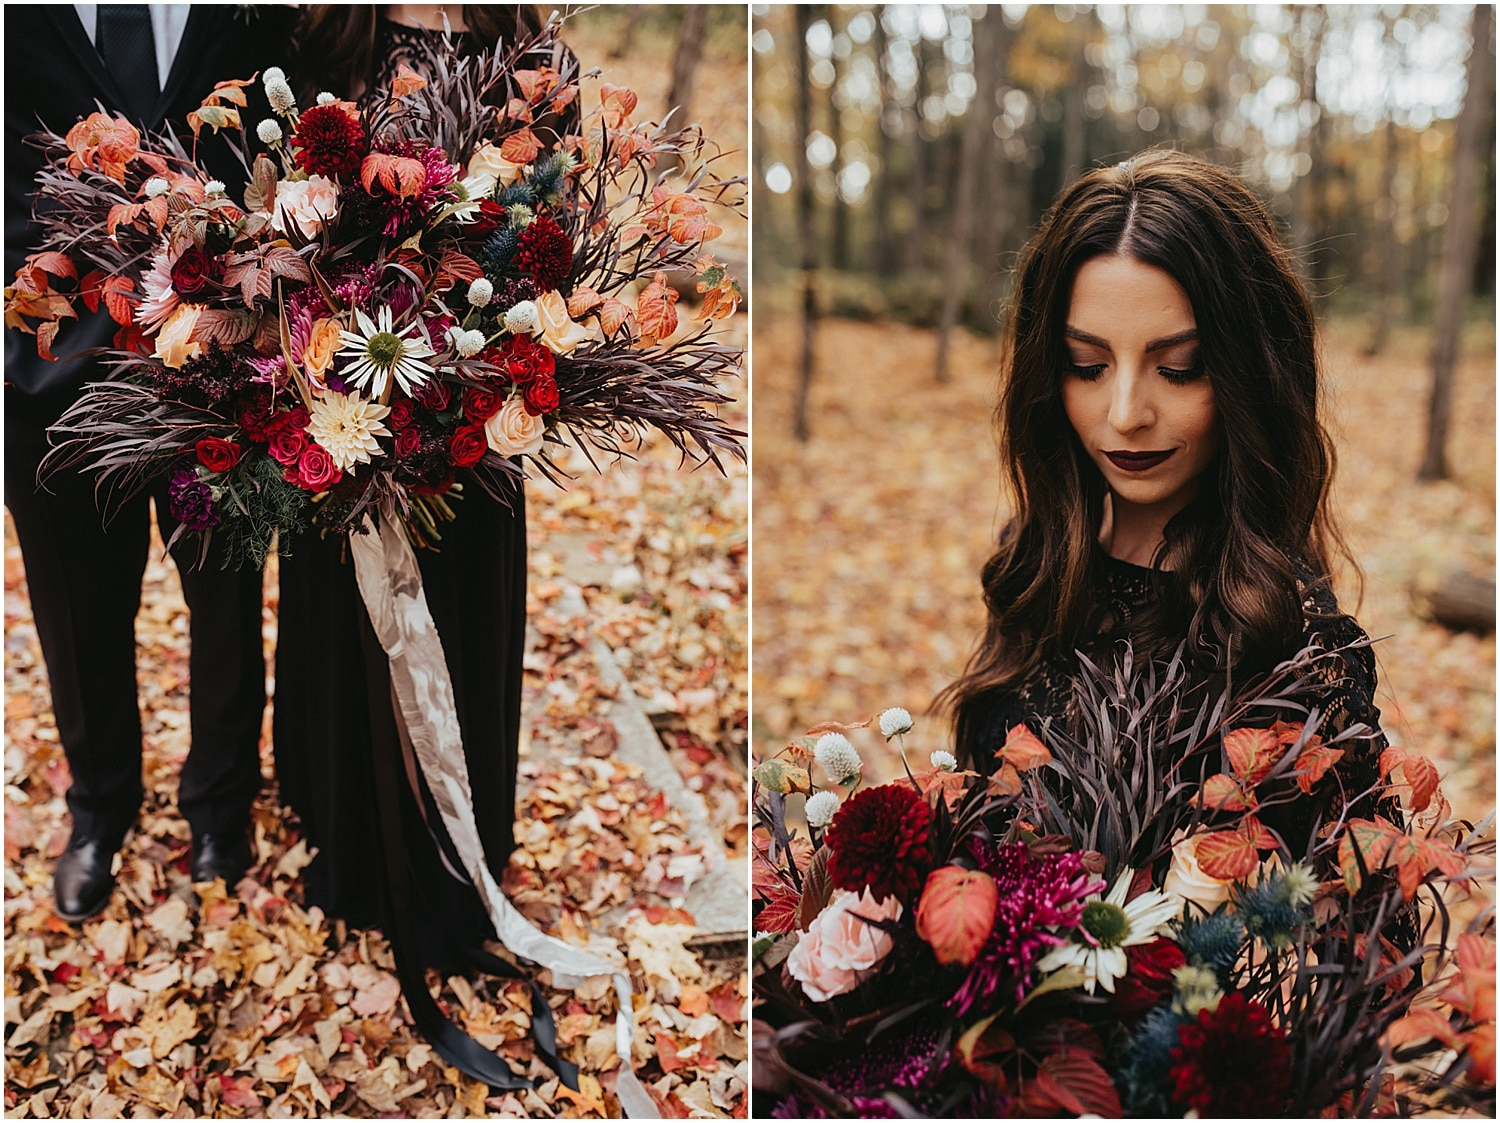 beautiful big bouquet of wildflowers at this fall halloween wedding inspiration shoot